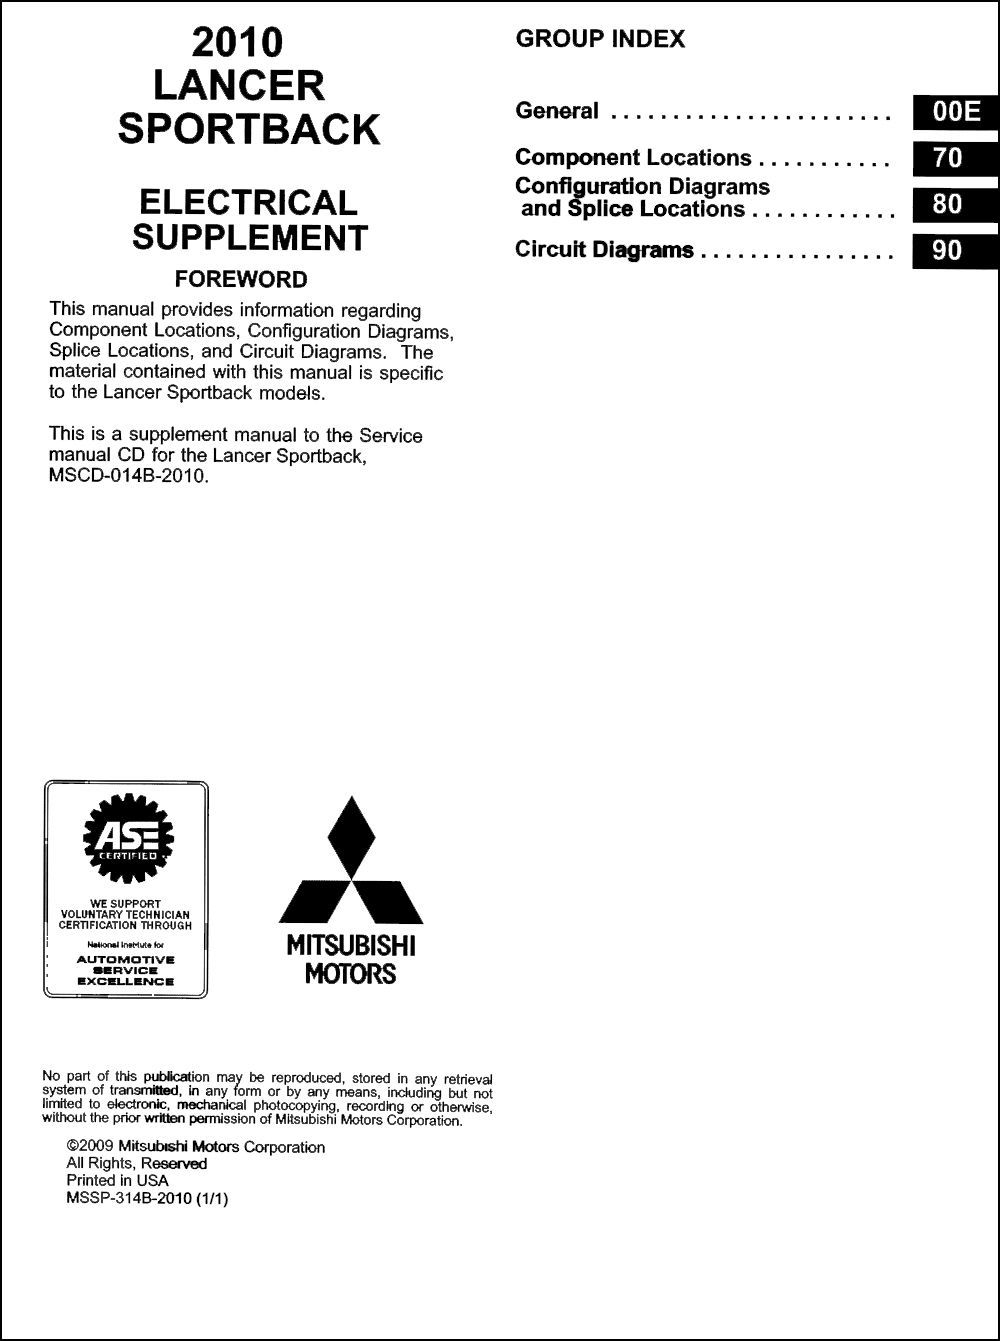 [DVZP_7254]   DIAGRAM] 2008 Mitsubishi Lancer Evolution Wiring Diagram Manual Original  FULL Version HD Quality Manual Original -  OILDRILLINGDIAGRAM.CREAPITCHOUNE.FR | John Deere 8300 Wiring Diagram Radar Wire 211 |  | oildrillingdiagram.creapitchoune.fr